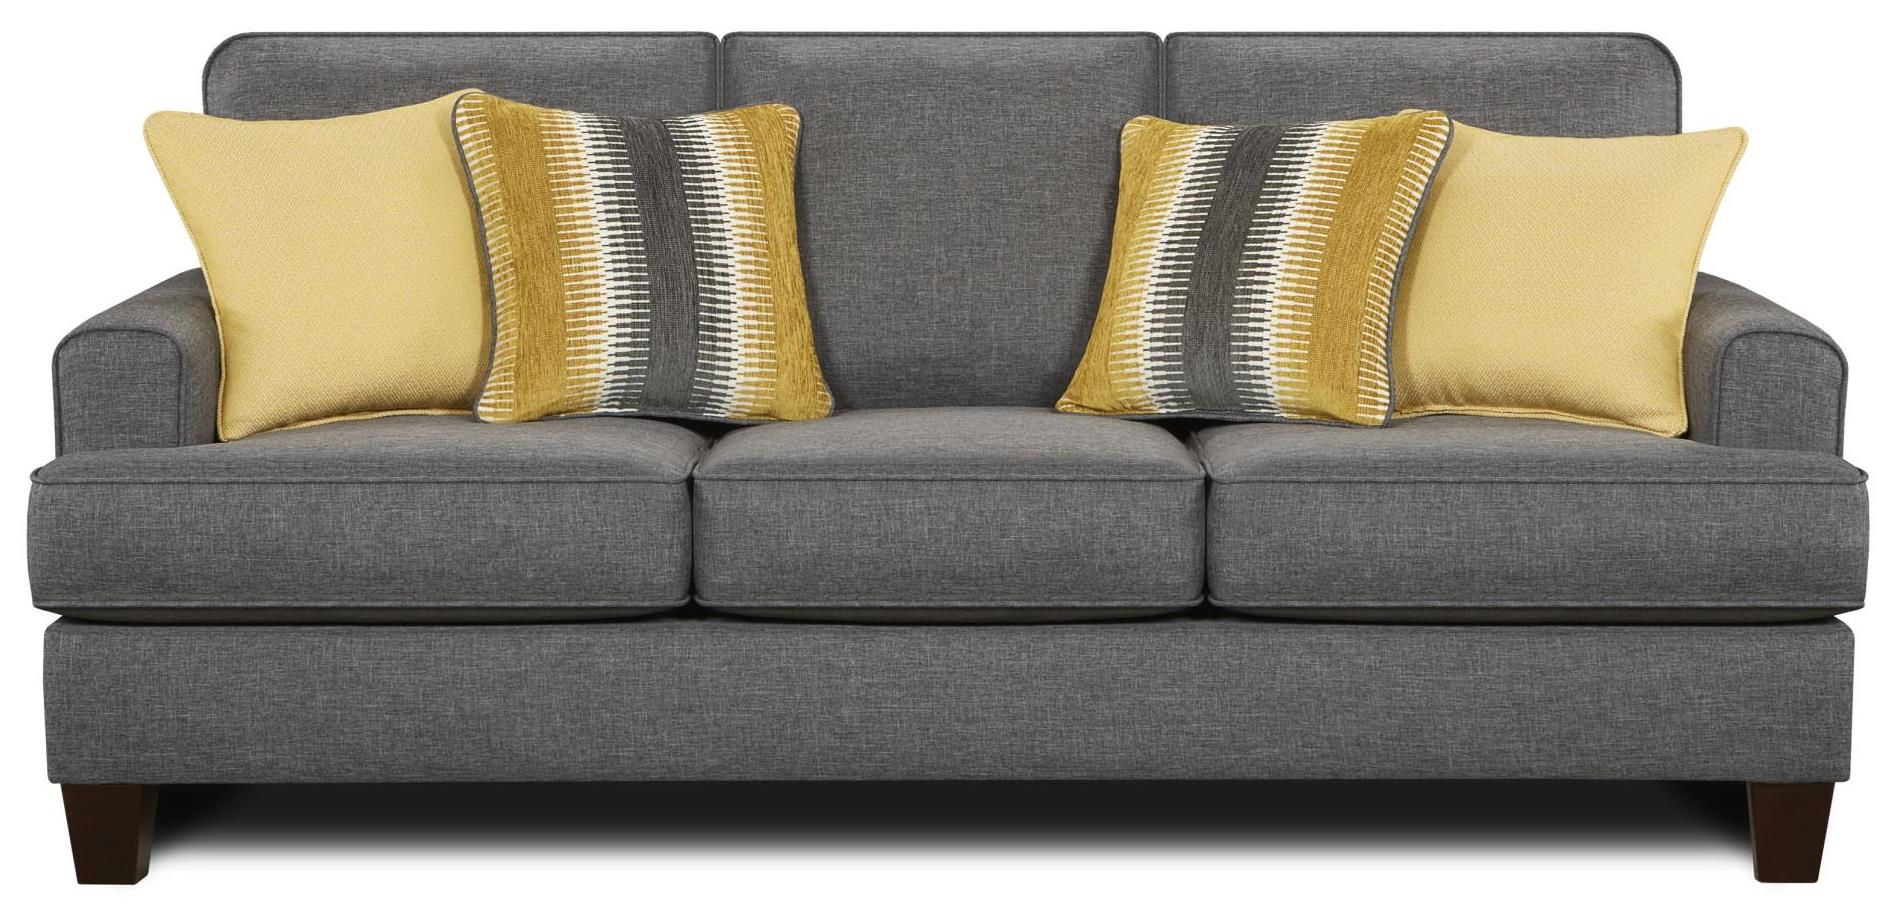 Martens Sofa by Fusion Furniture at Crowley Furniture & Mattress